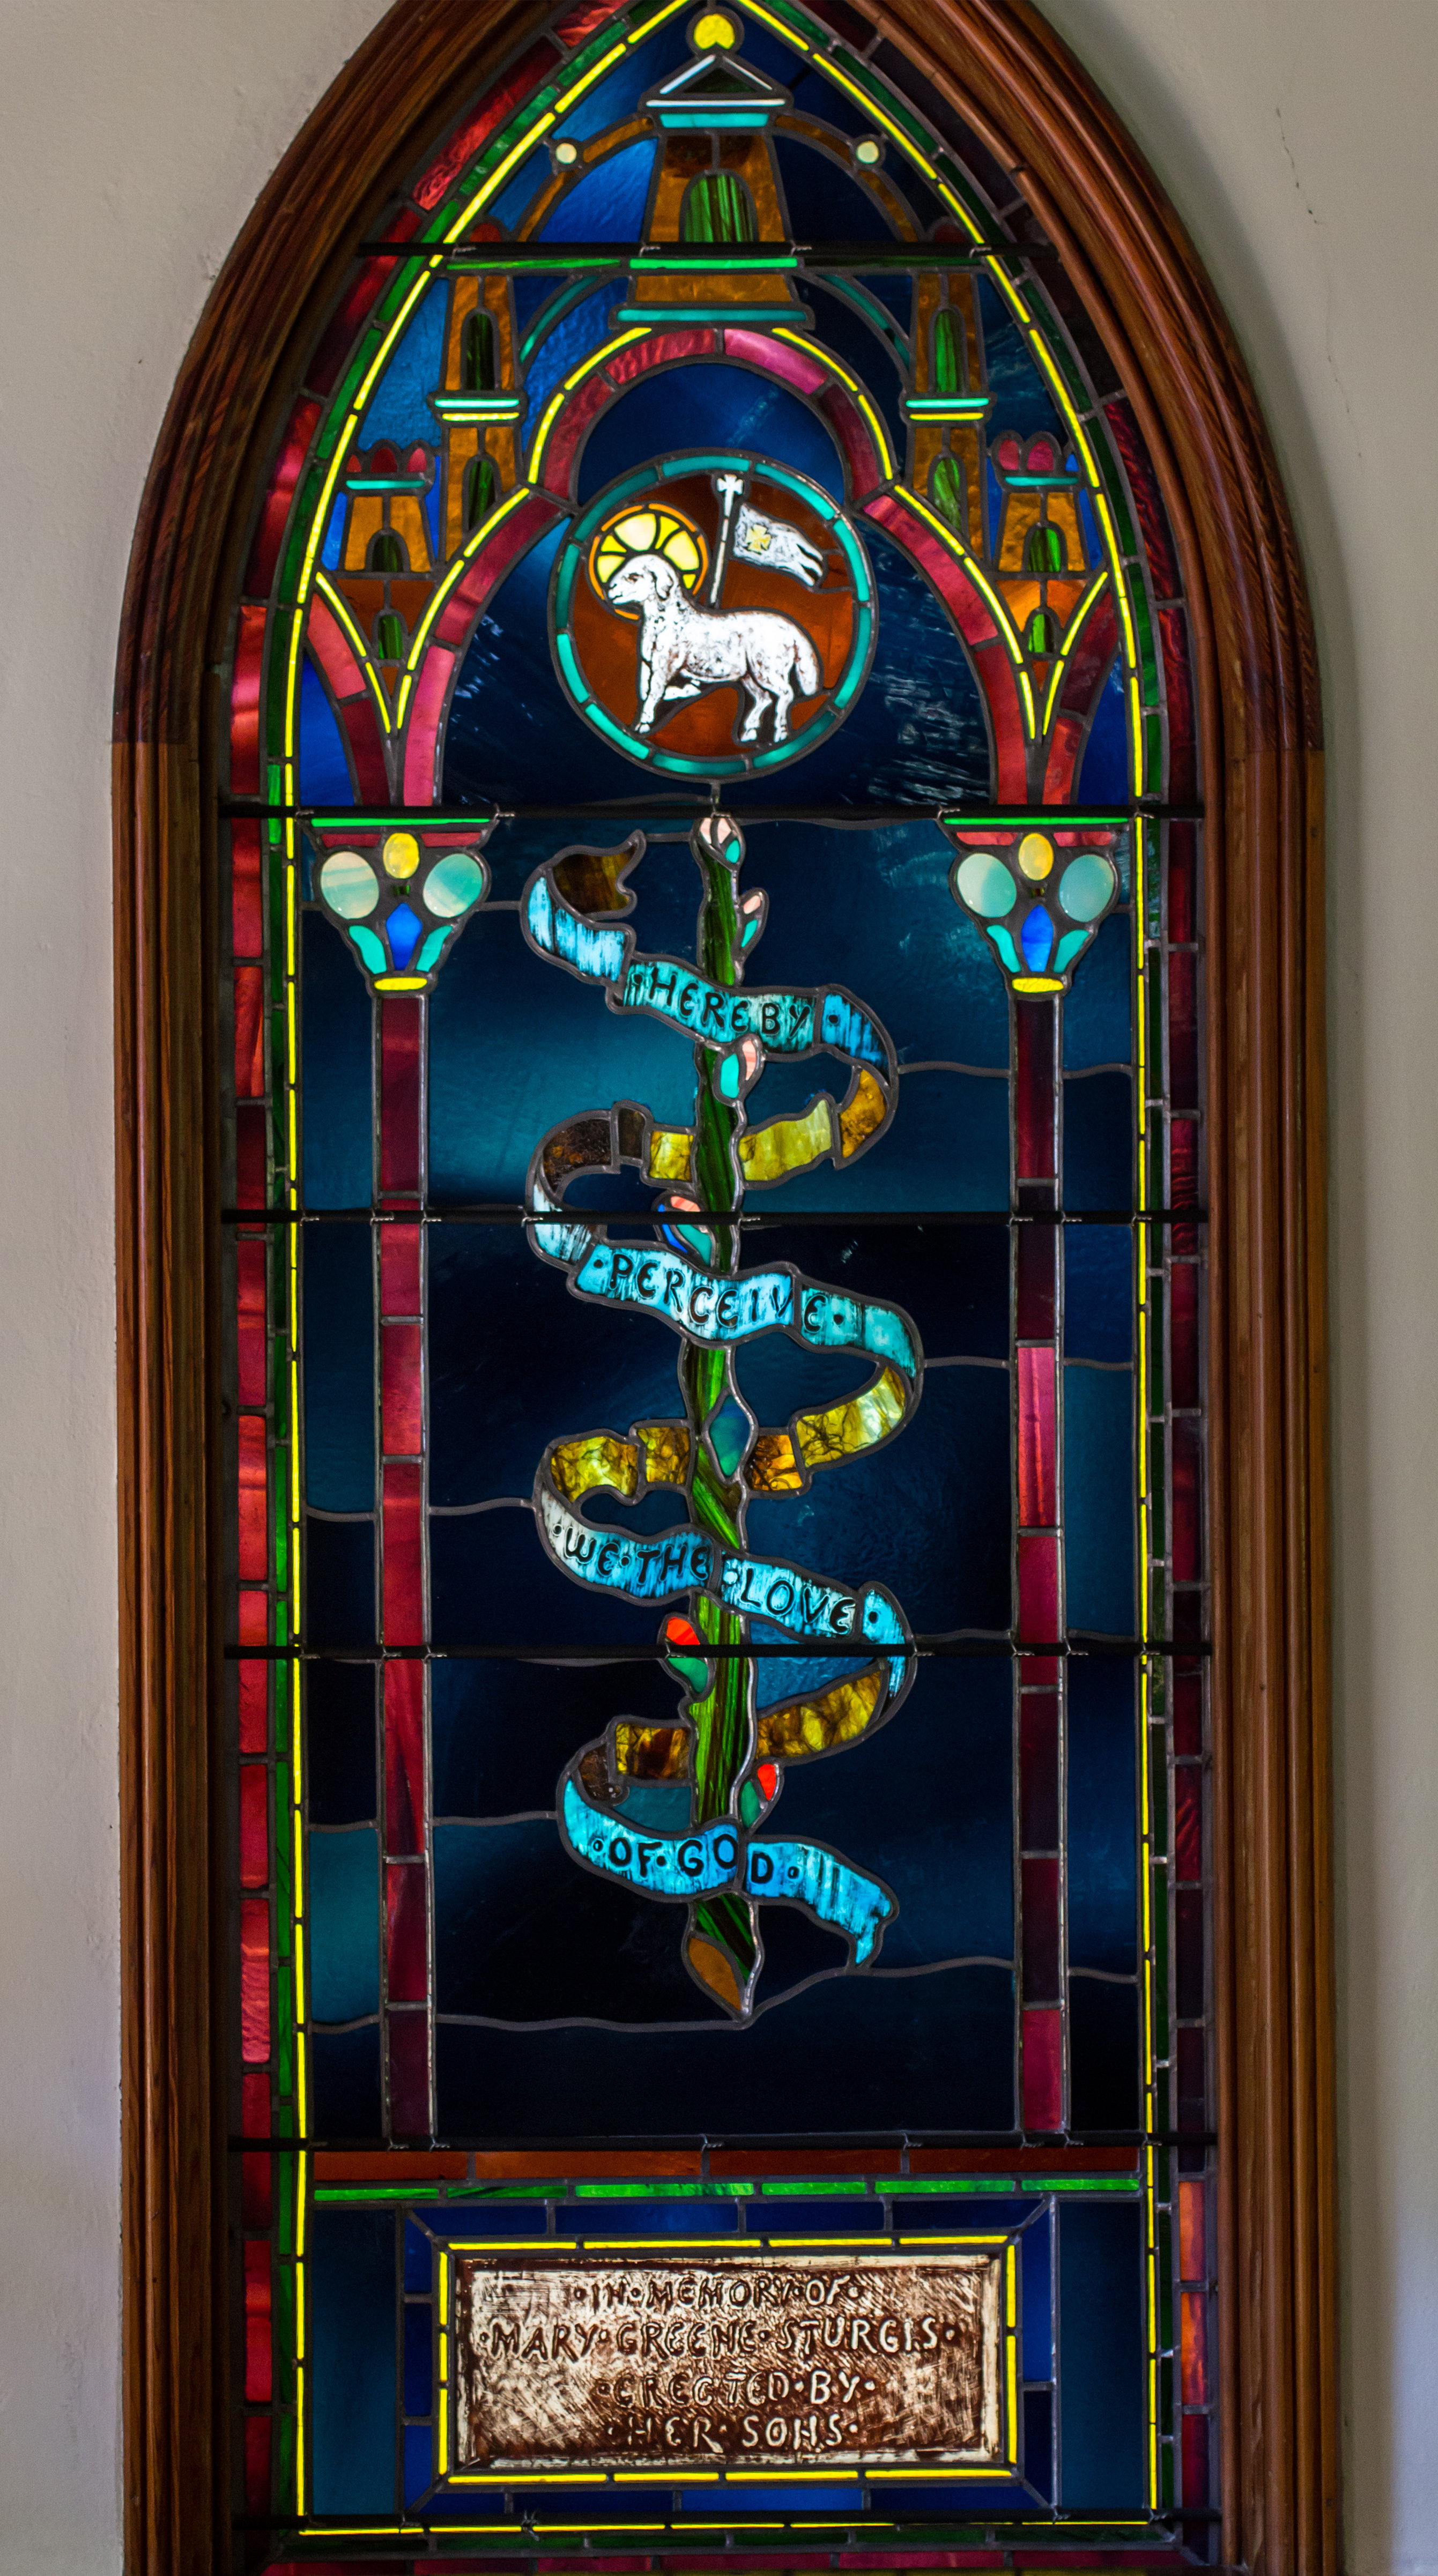 St Mary College >> Mary Greene Memorial Window · John La Farge Stained Glass